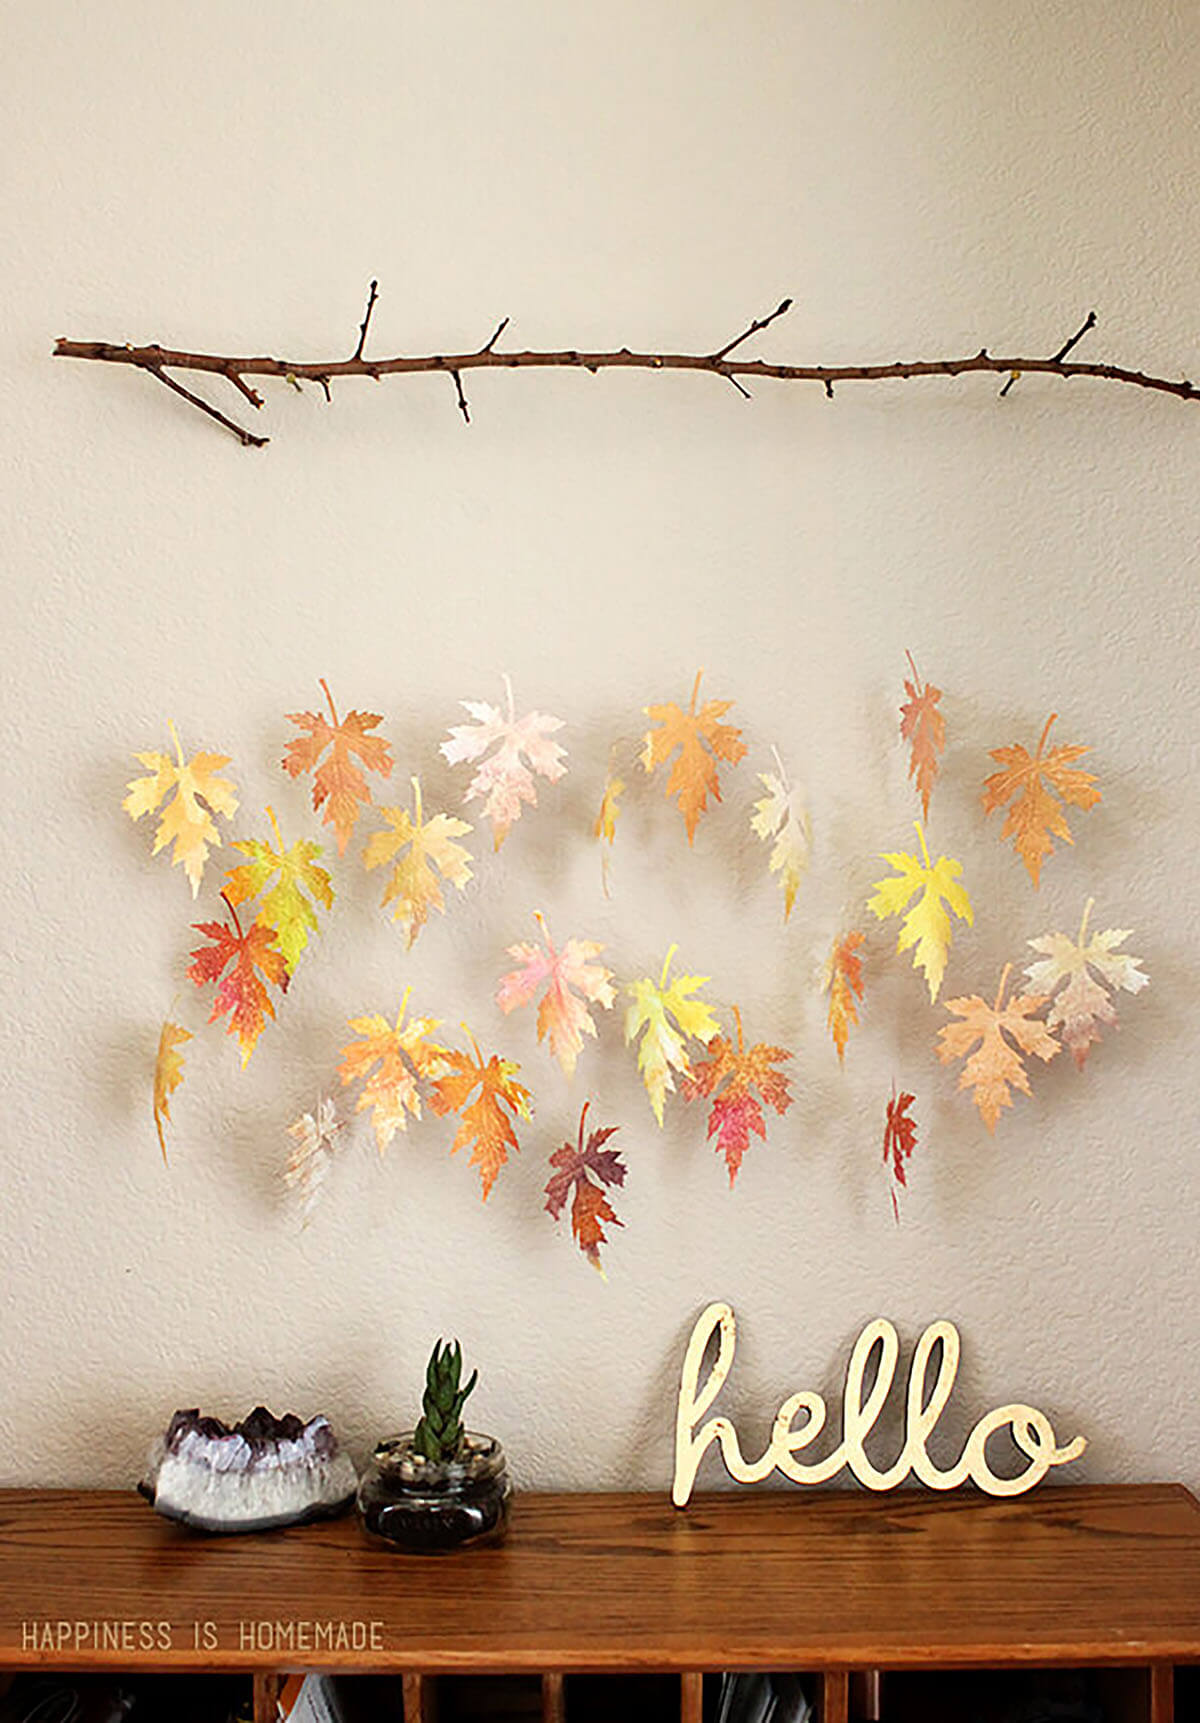 Wall-Hanging Rustic Falling Leaves Mobile